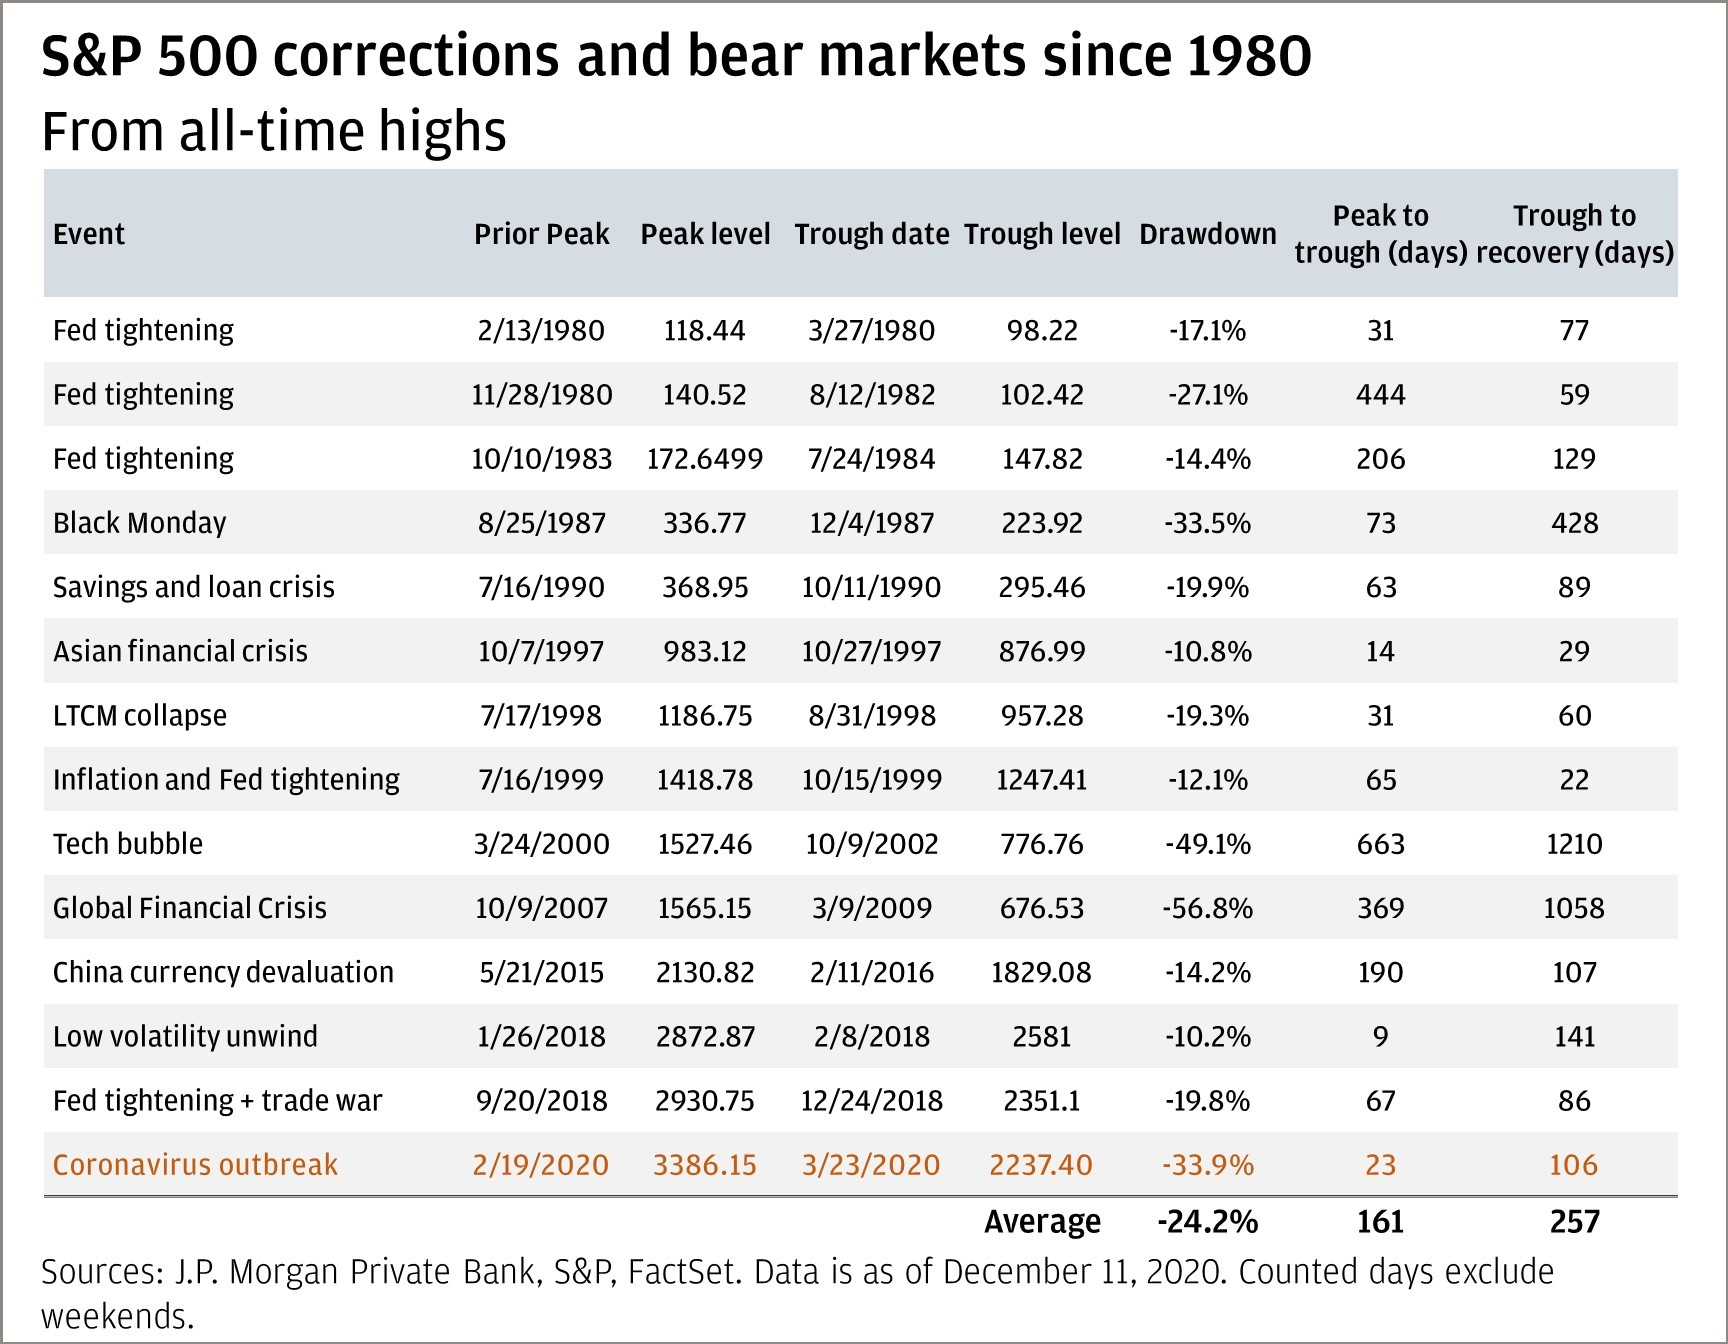 Chart 2: This chart highlights S&P 500 corrections and bear markets since 1980